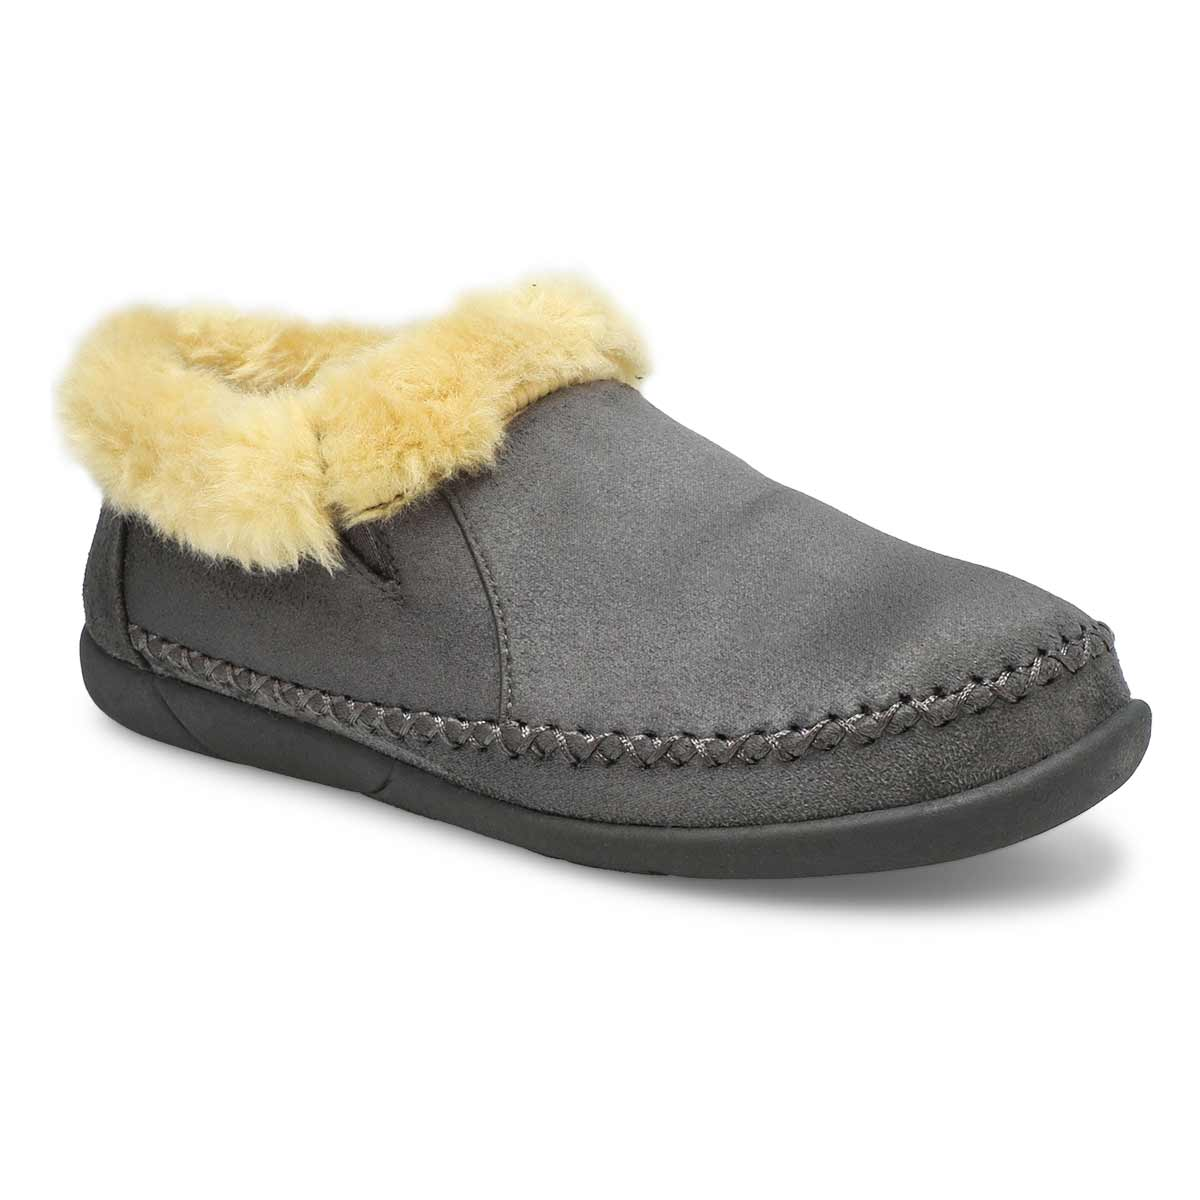 Lds Shae charcoal slip on bootie